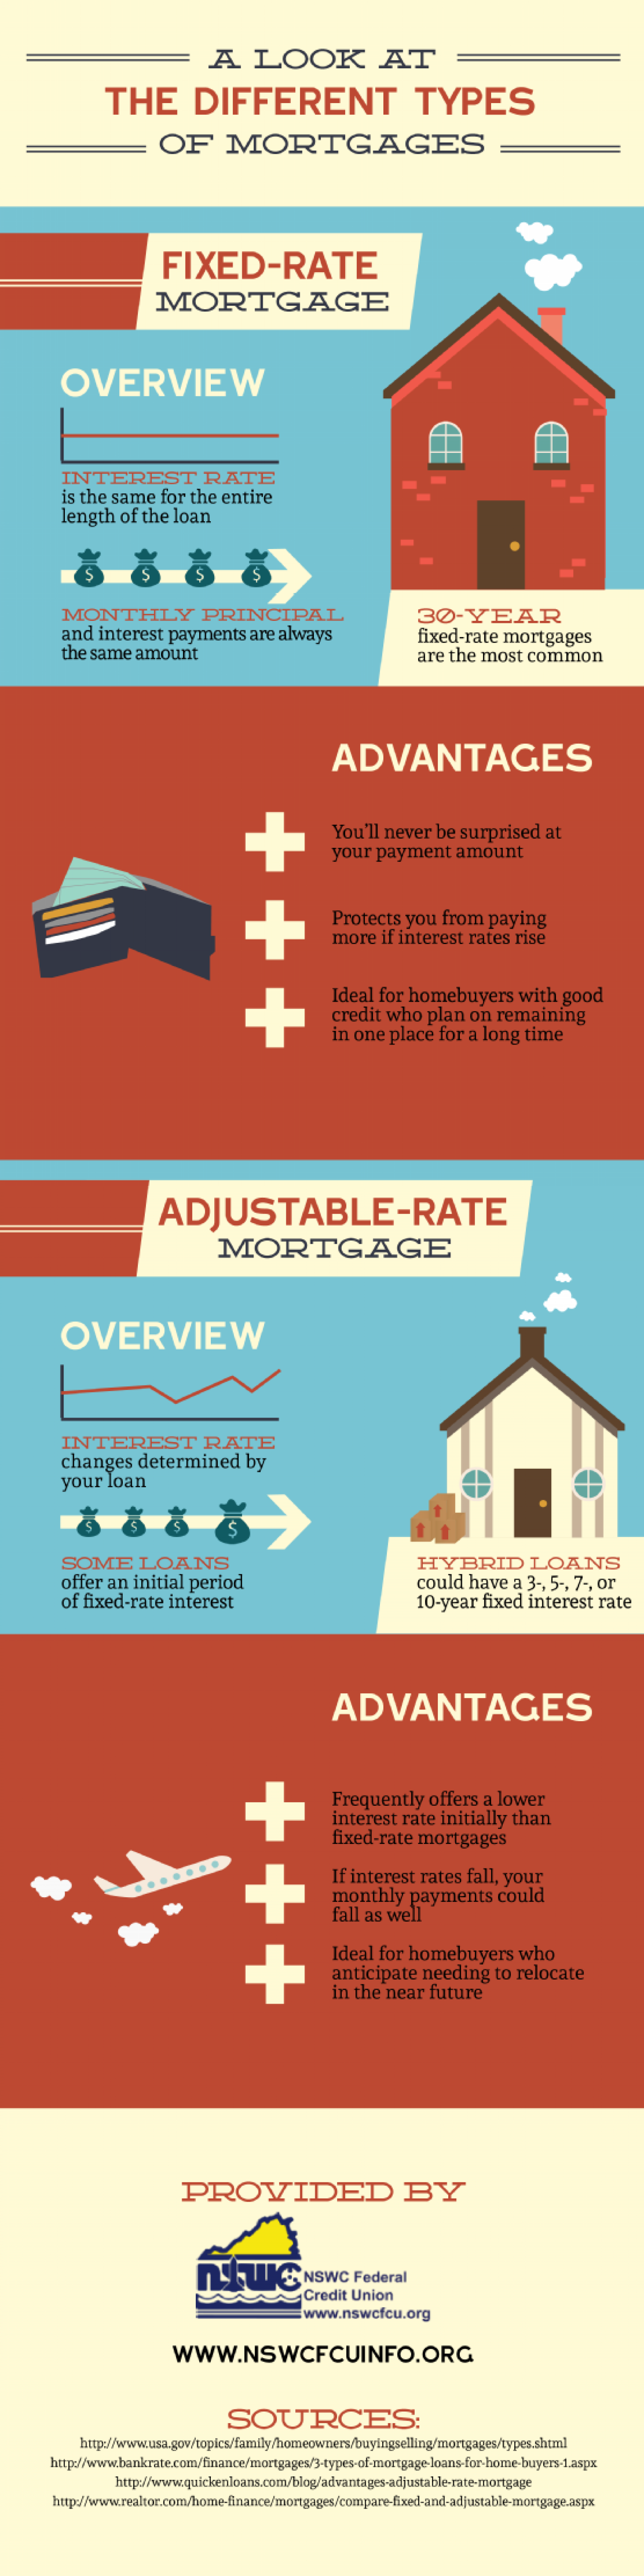 A Look at the Different Types of Mortgages Infographic